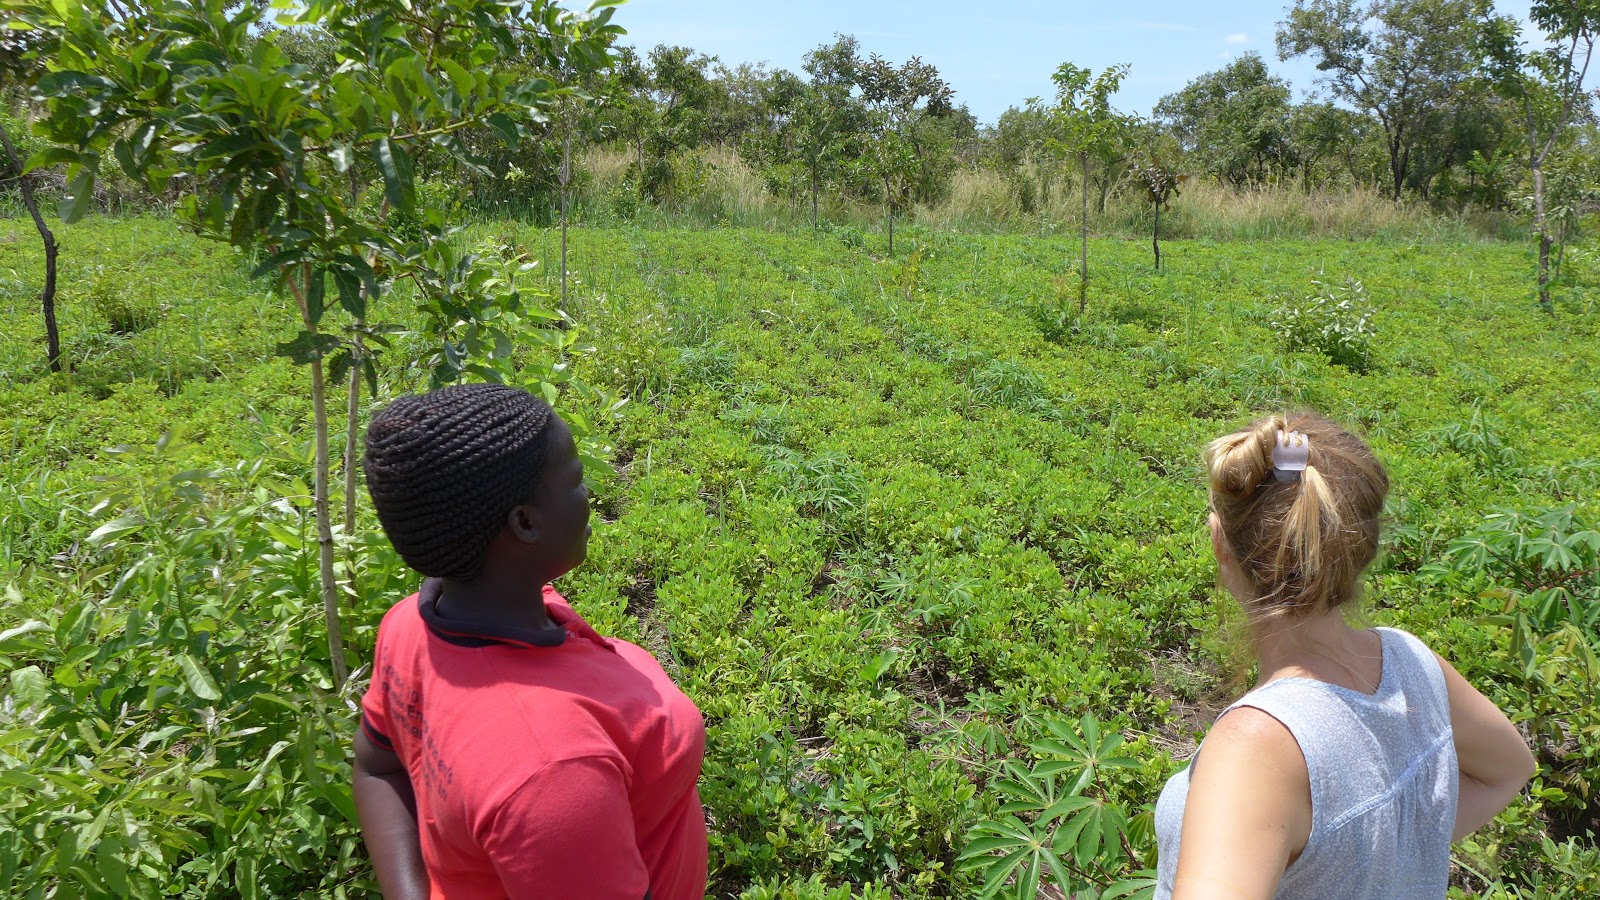 Overlooking a polyculture of peanuts, cassava, and natural regeneration of native trees.